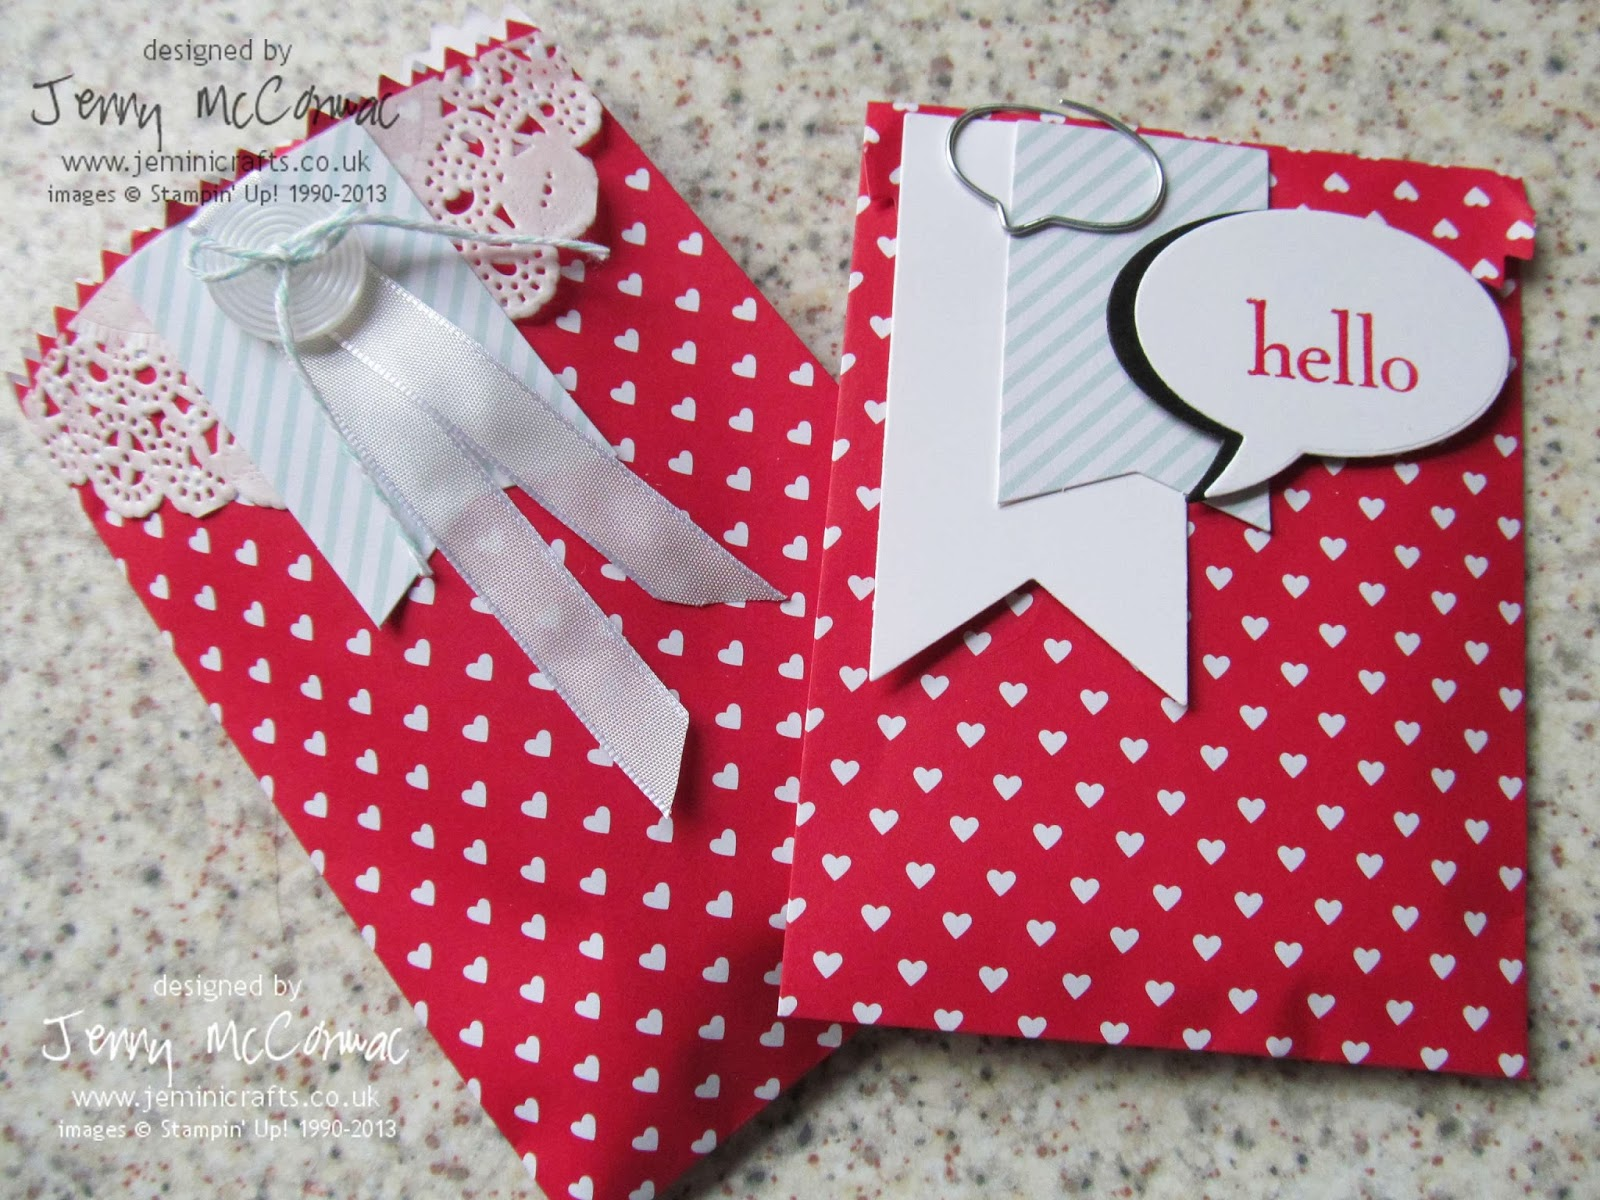 Sweet heart Treat Bags Jemini Crafts stampin up